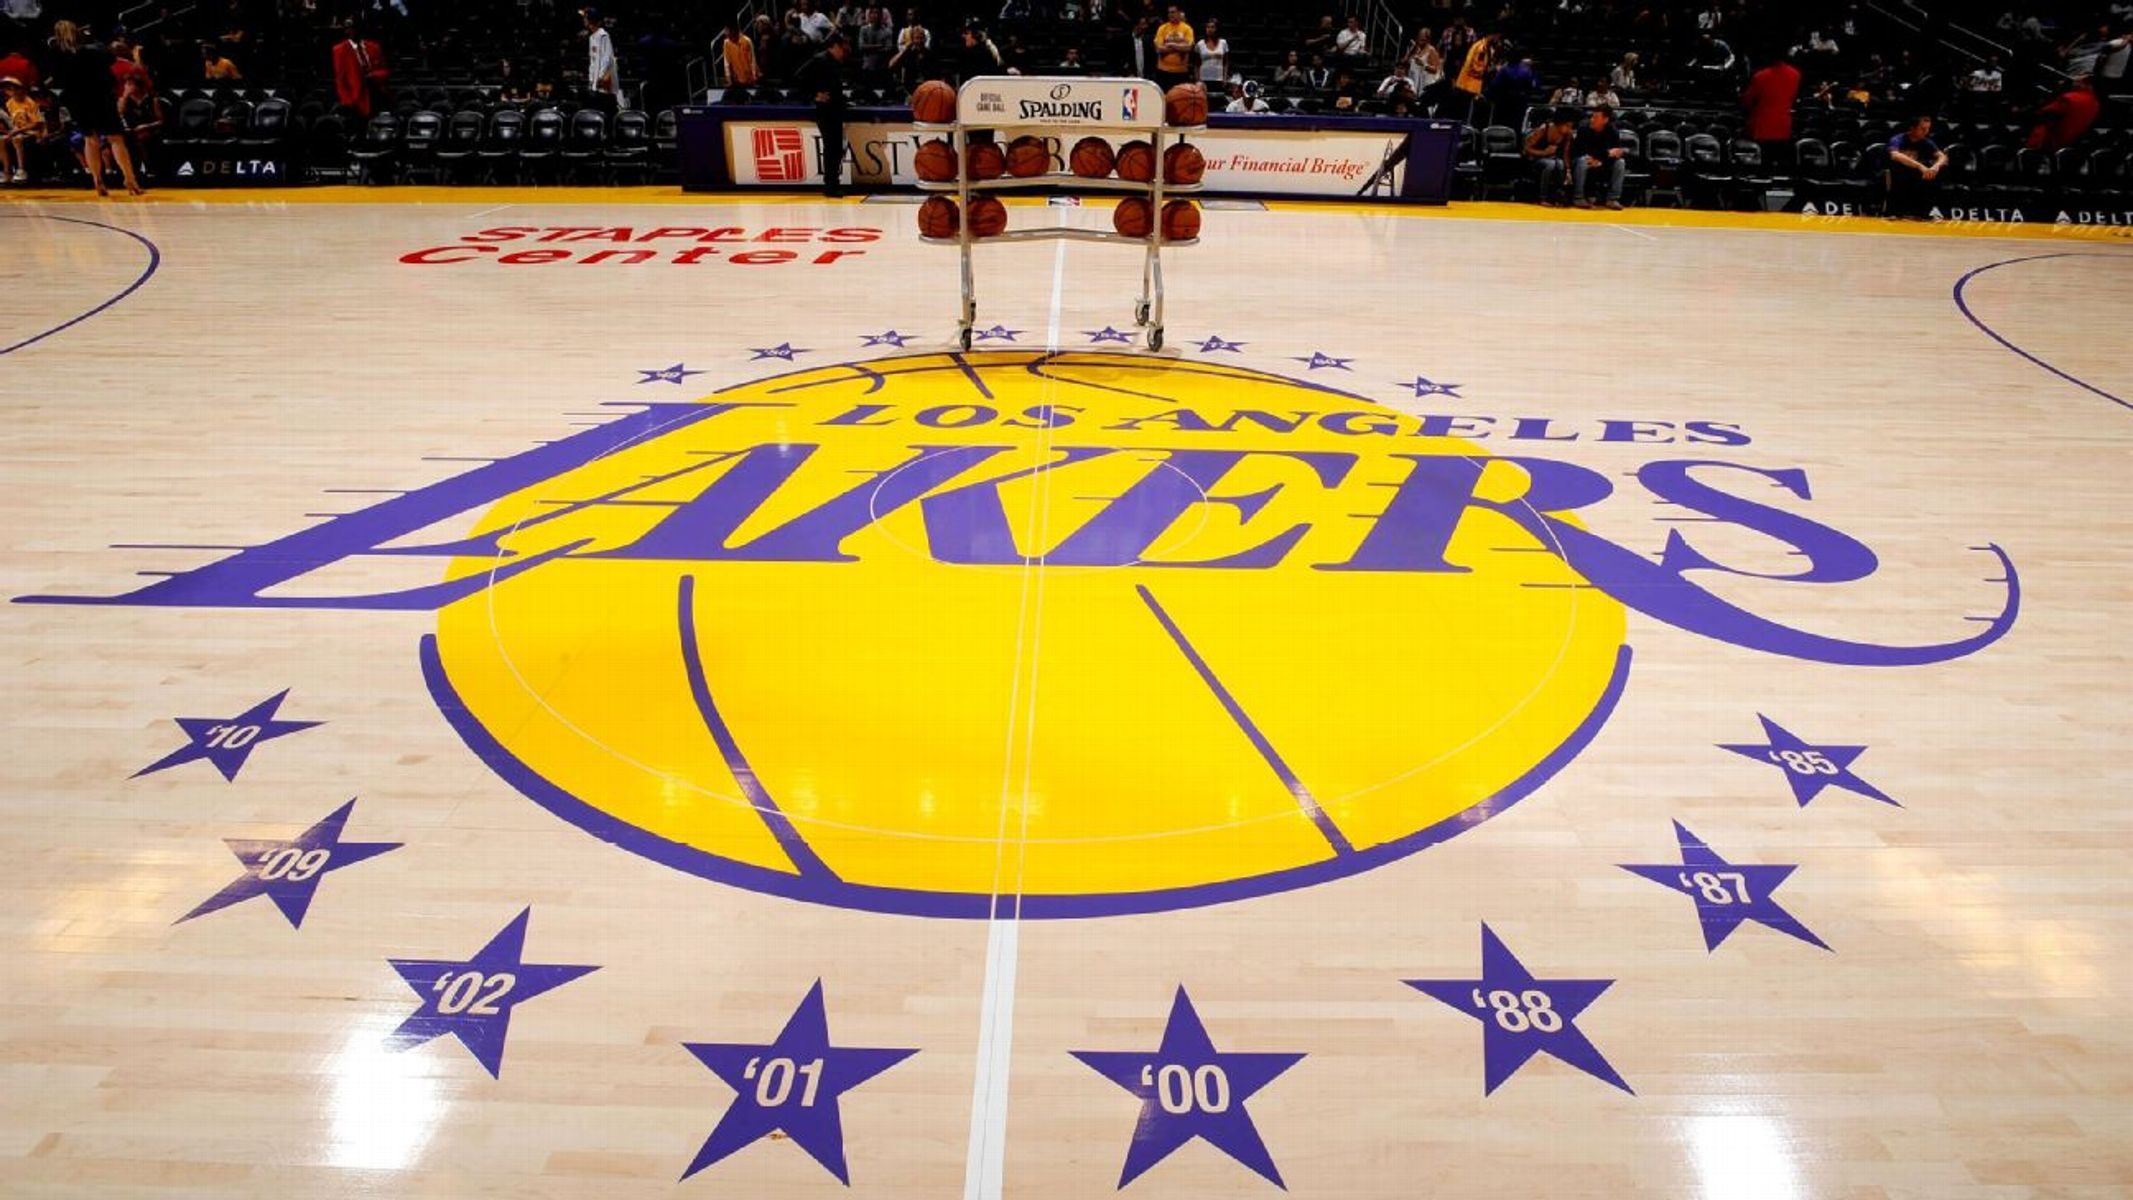 No symptoms for Lakers after 2-week quarantine